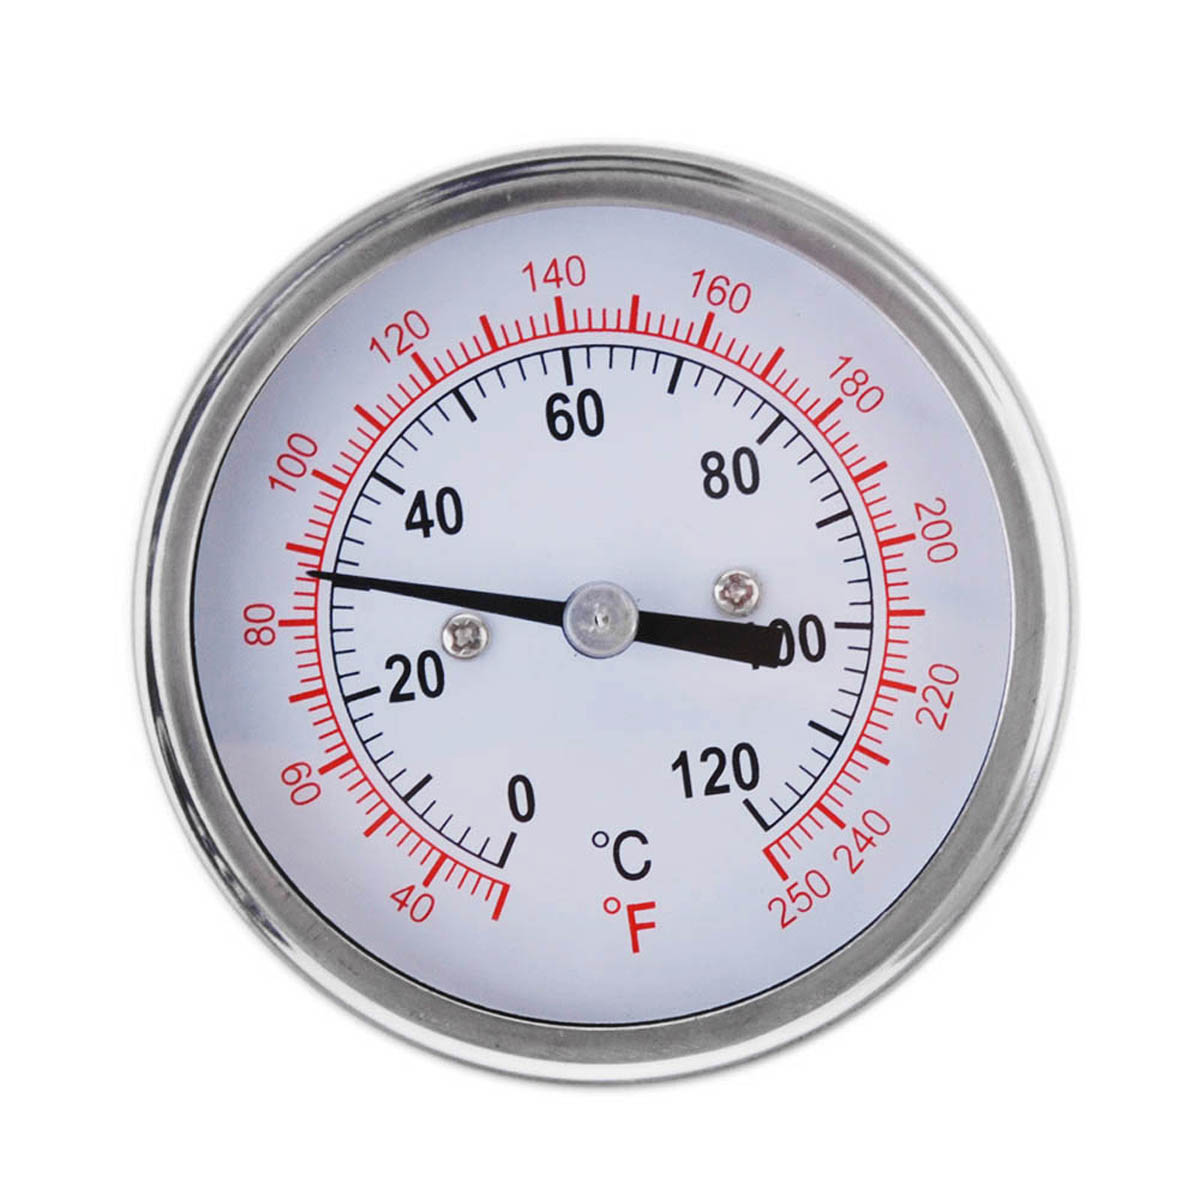 Classic Large Dial Oven Thermometer Food Meat Temperature Gauge by Unbranded